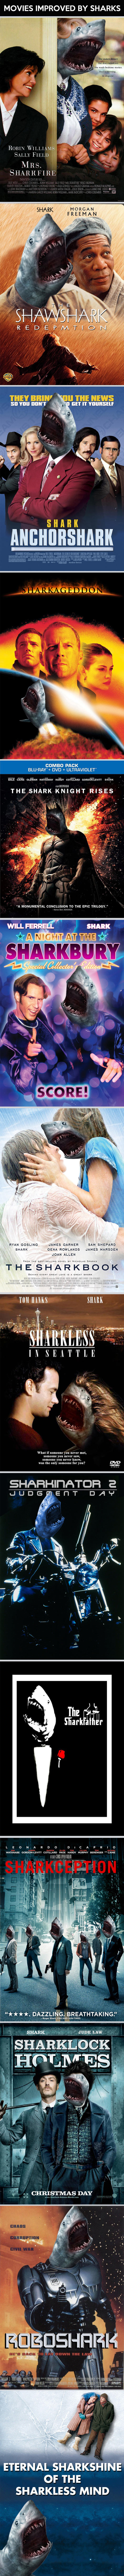 funny-Shark-movie-posters-films